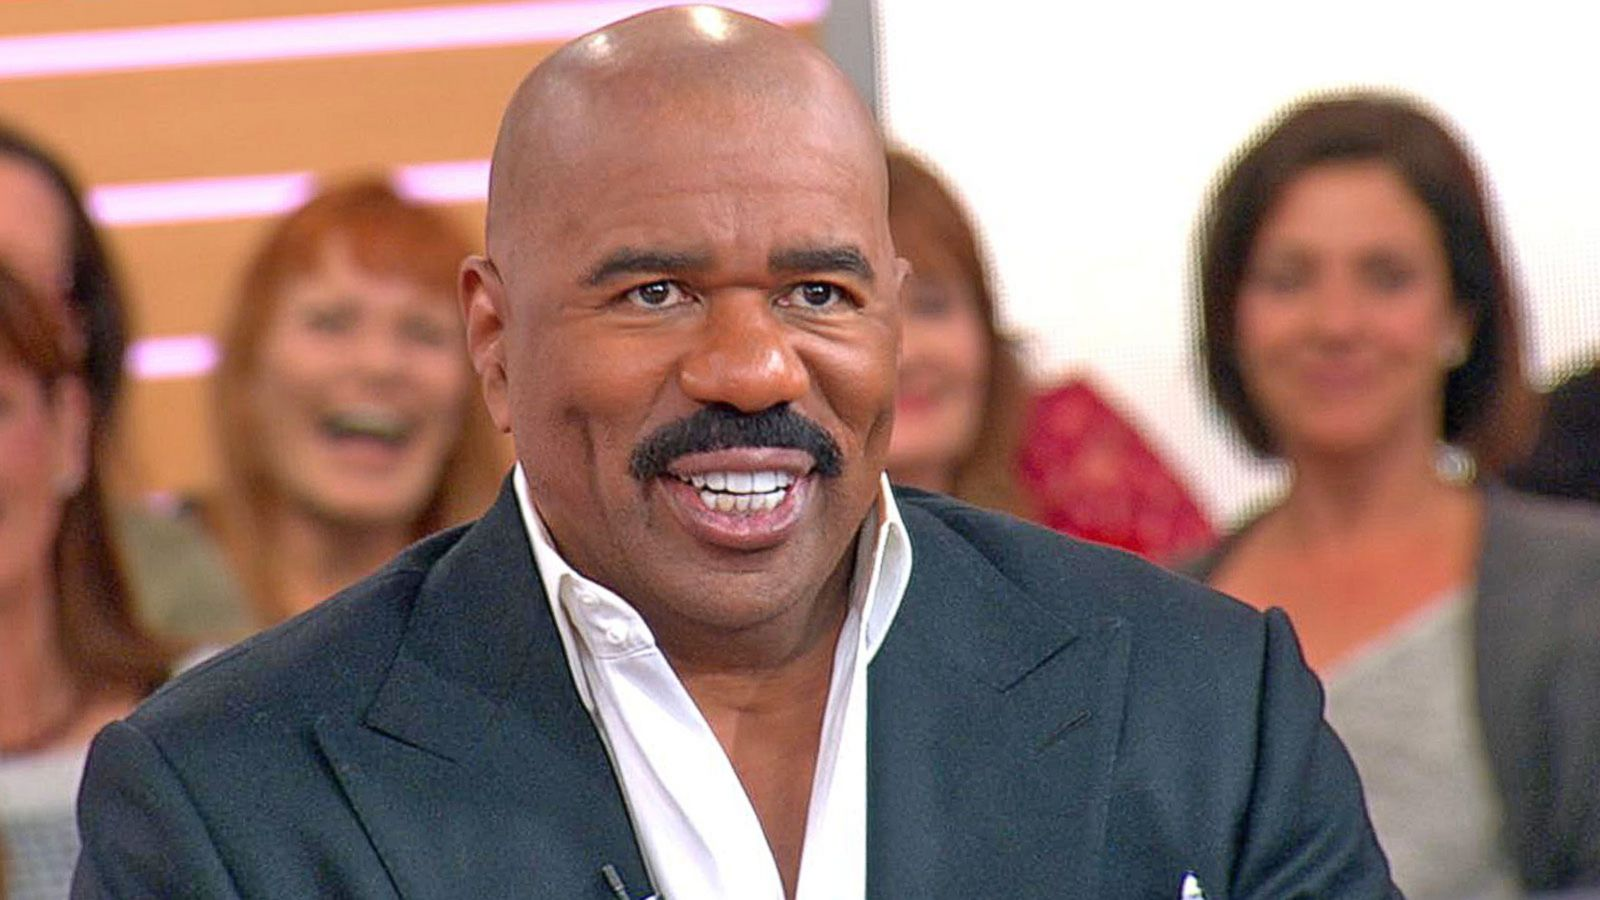 VIDEO: Steve Harvey Talks New Book Live on 'GMA'